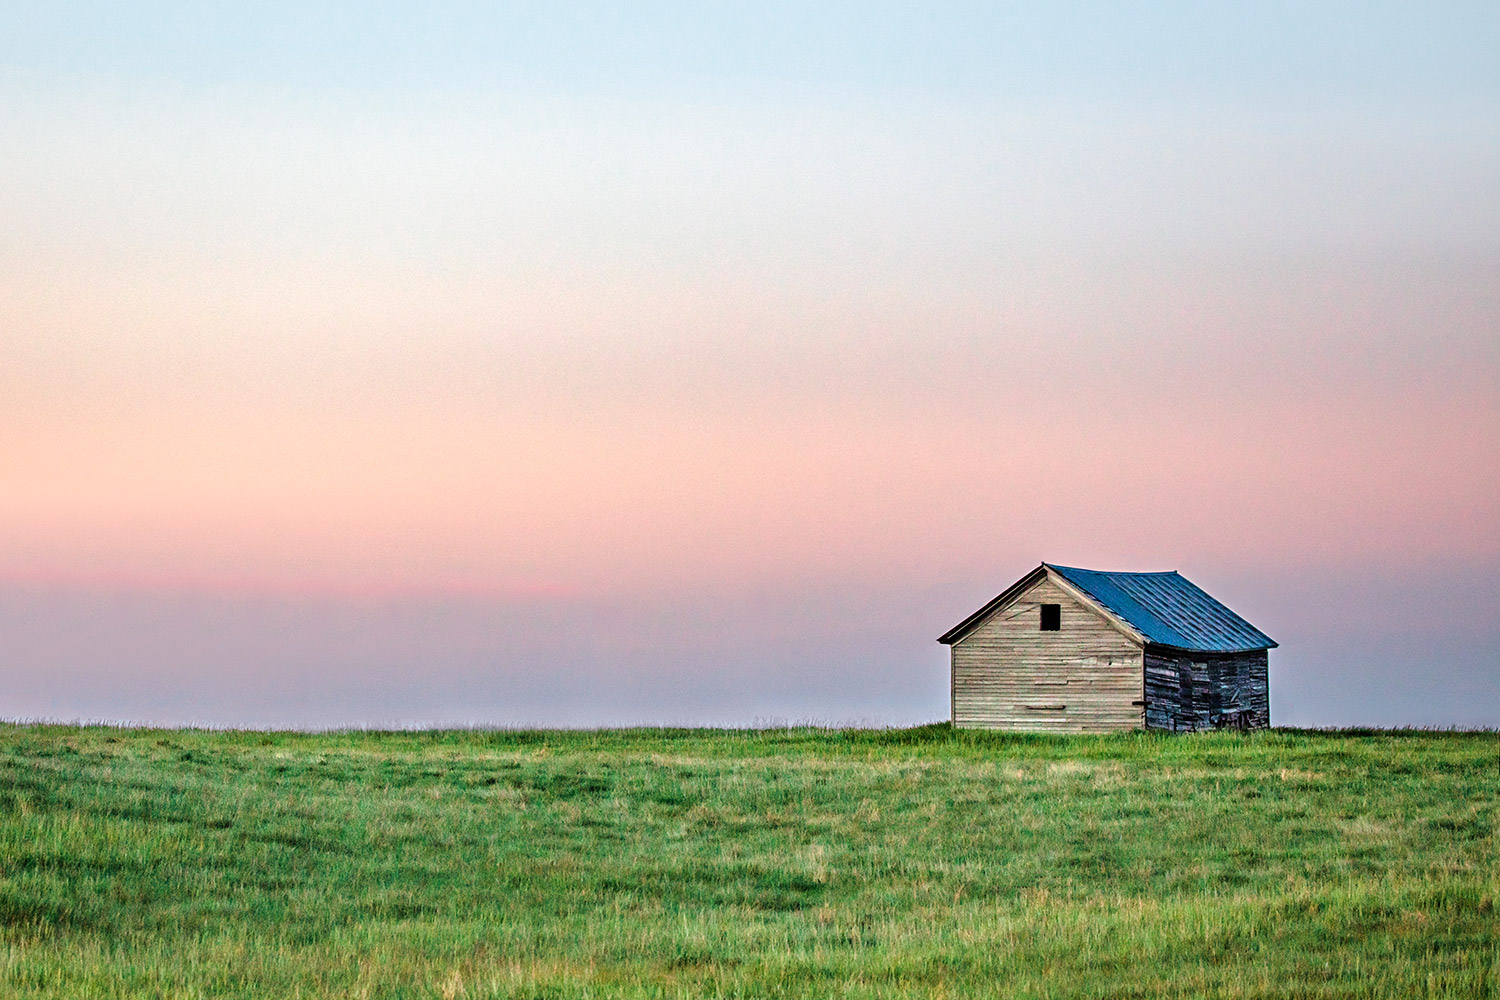 Lonely Old Shed